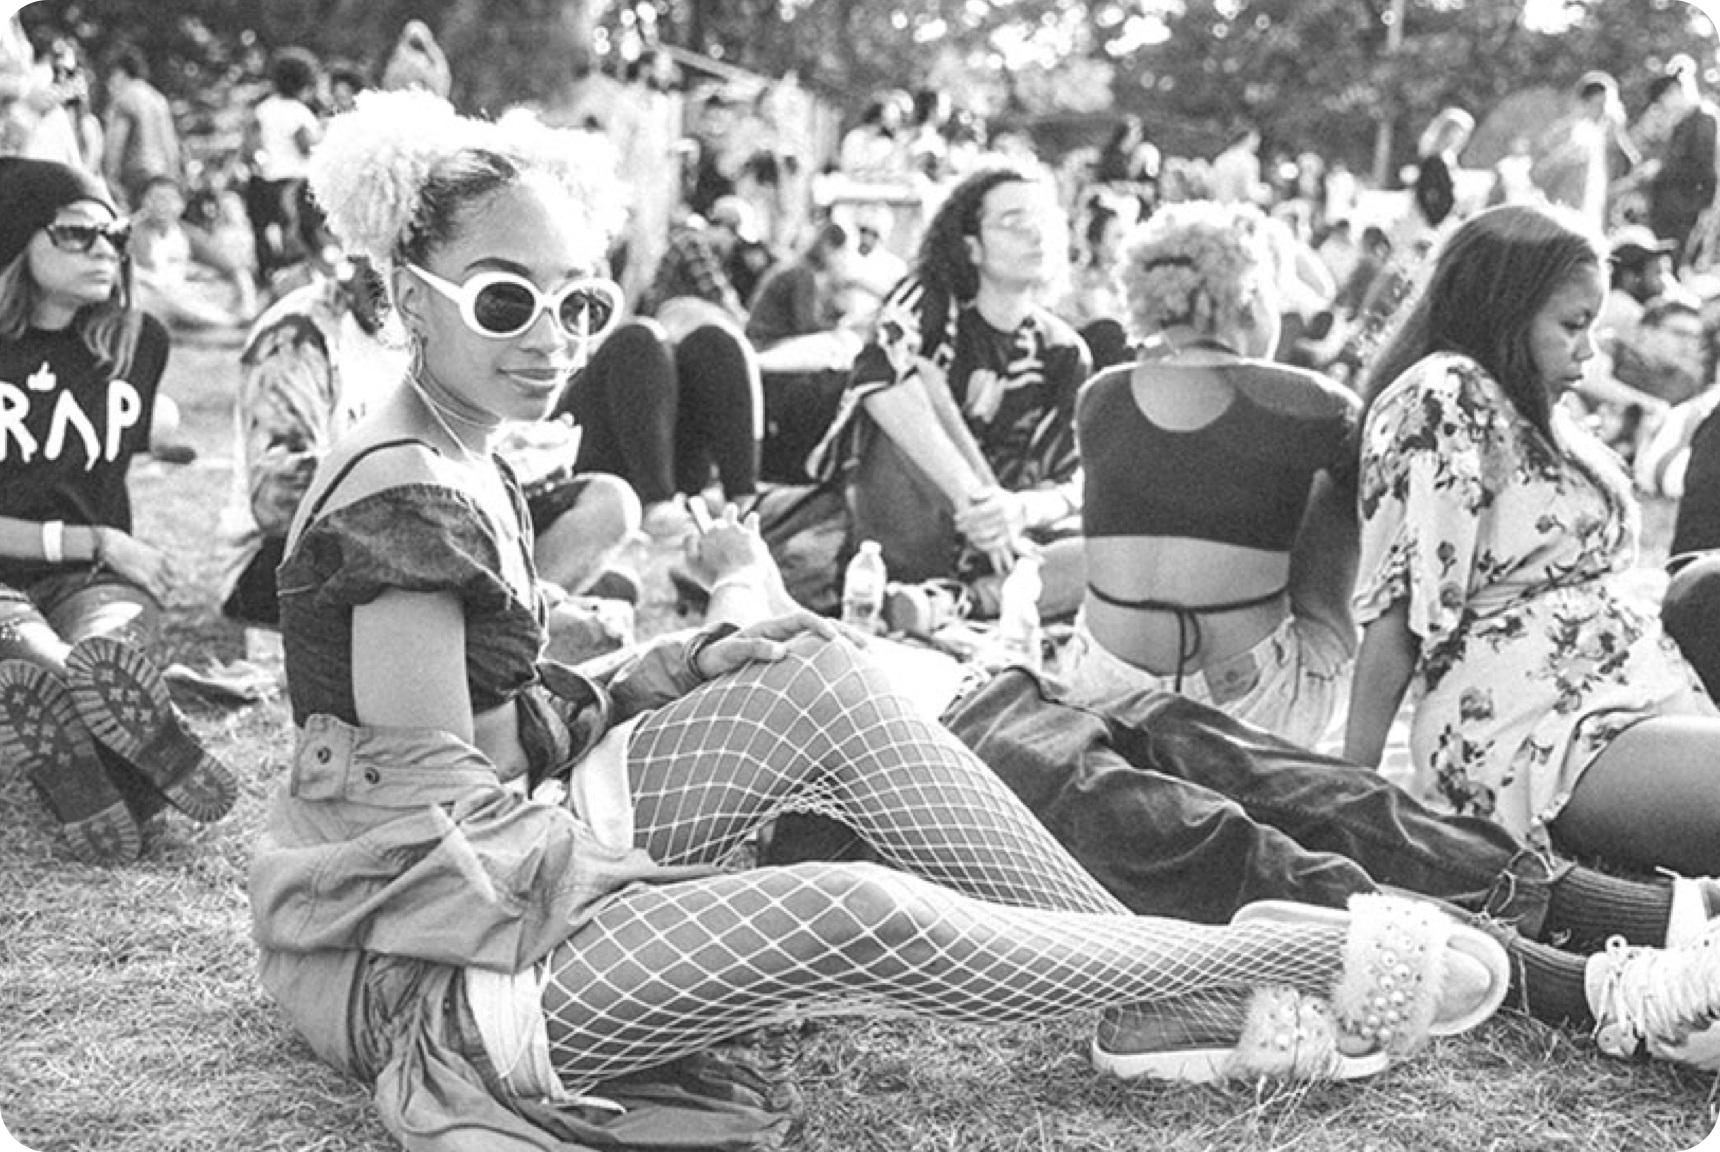 Girl wearing white sunglasses and white fishnets sitting on the grass in a crowd of people